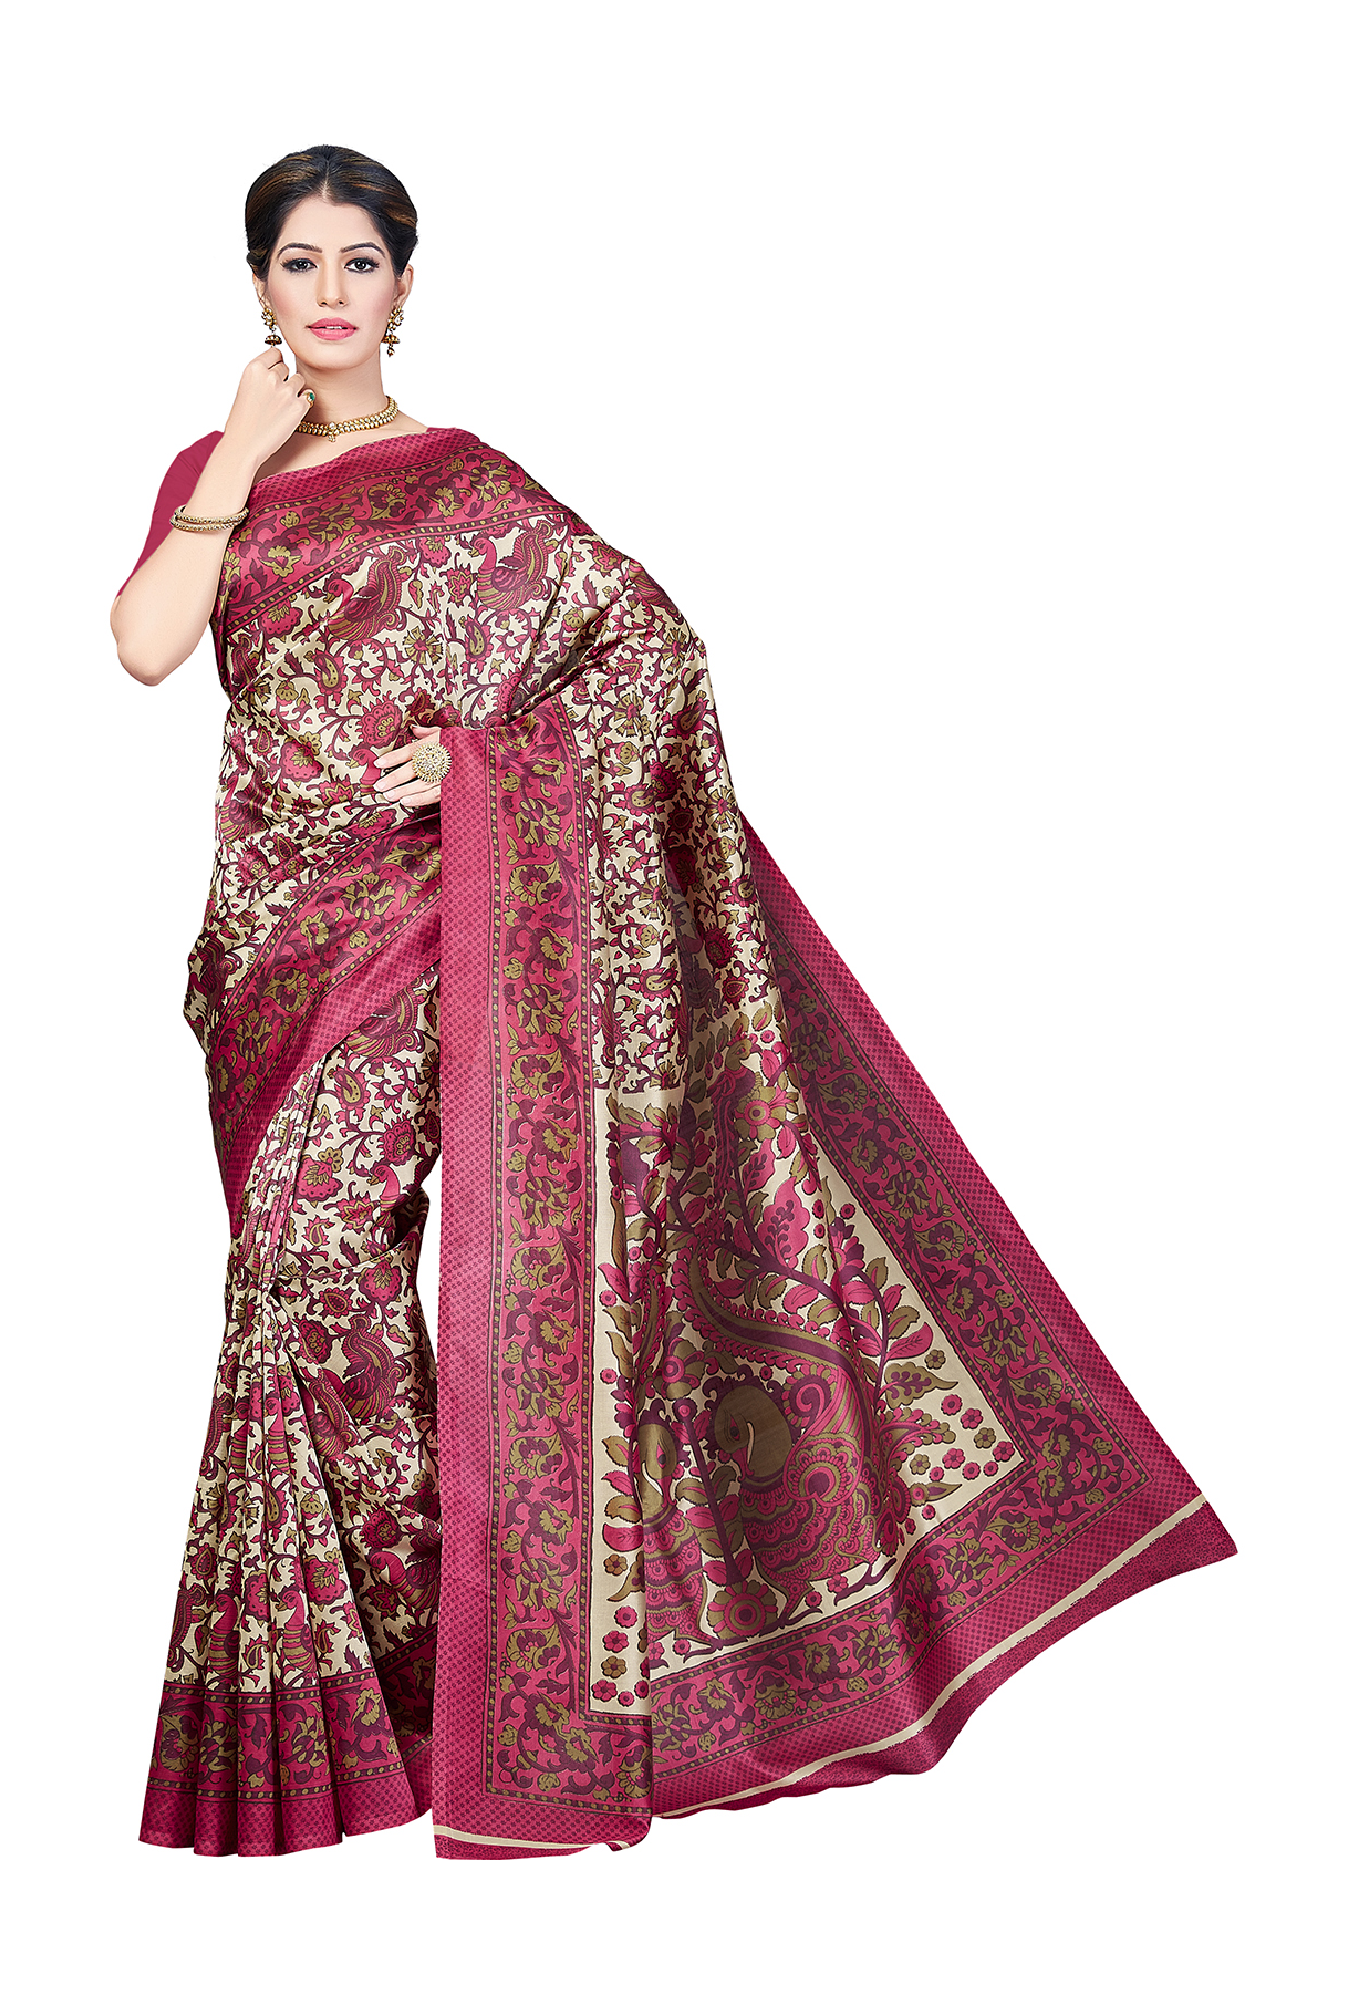 d6ccff234f3 Buy Ishin Pink Printed Saree With Blouse for Women Online   Tata CLiQ